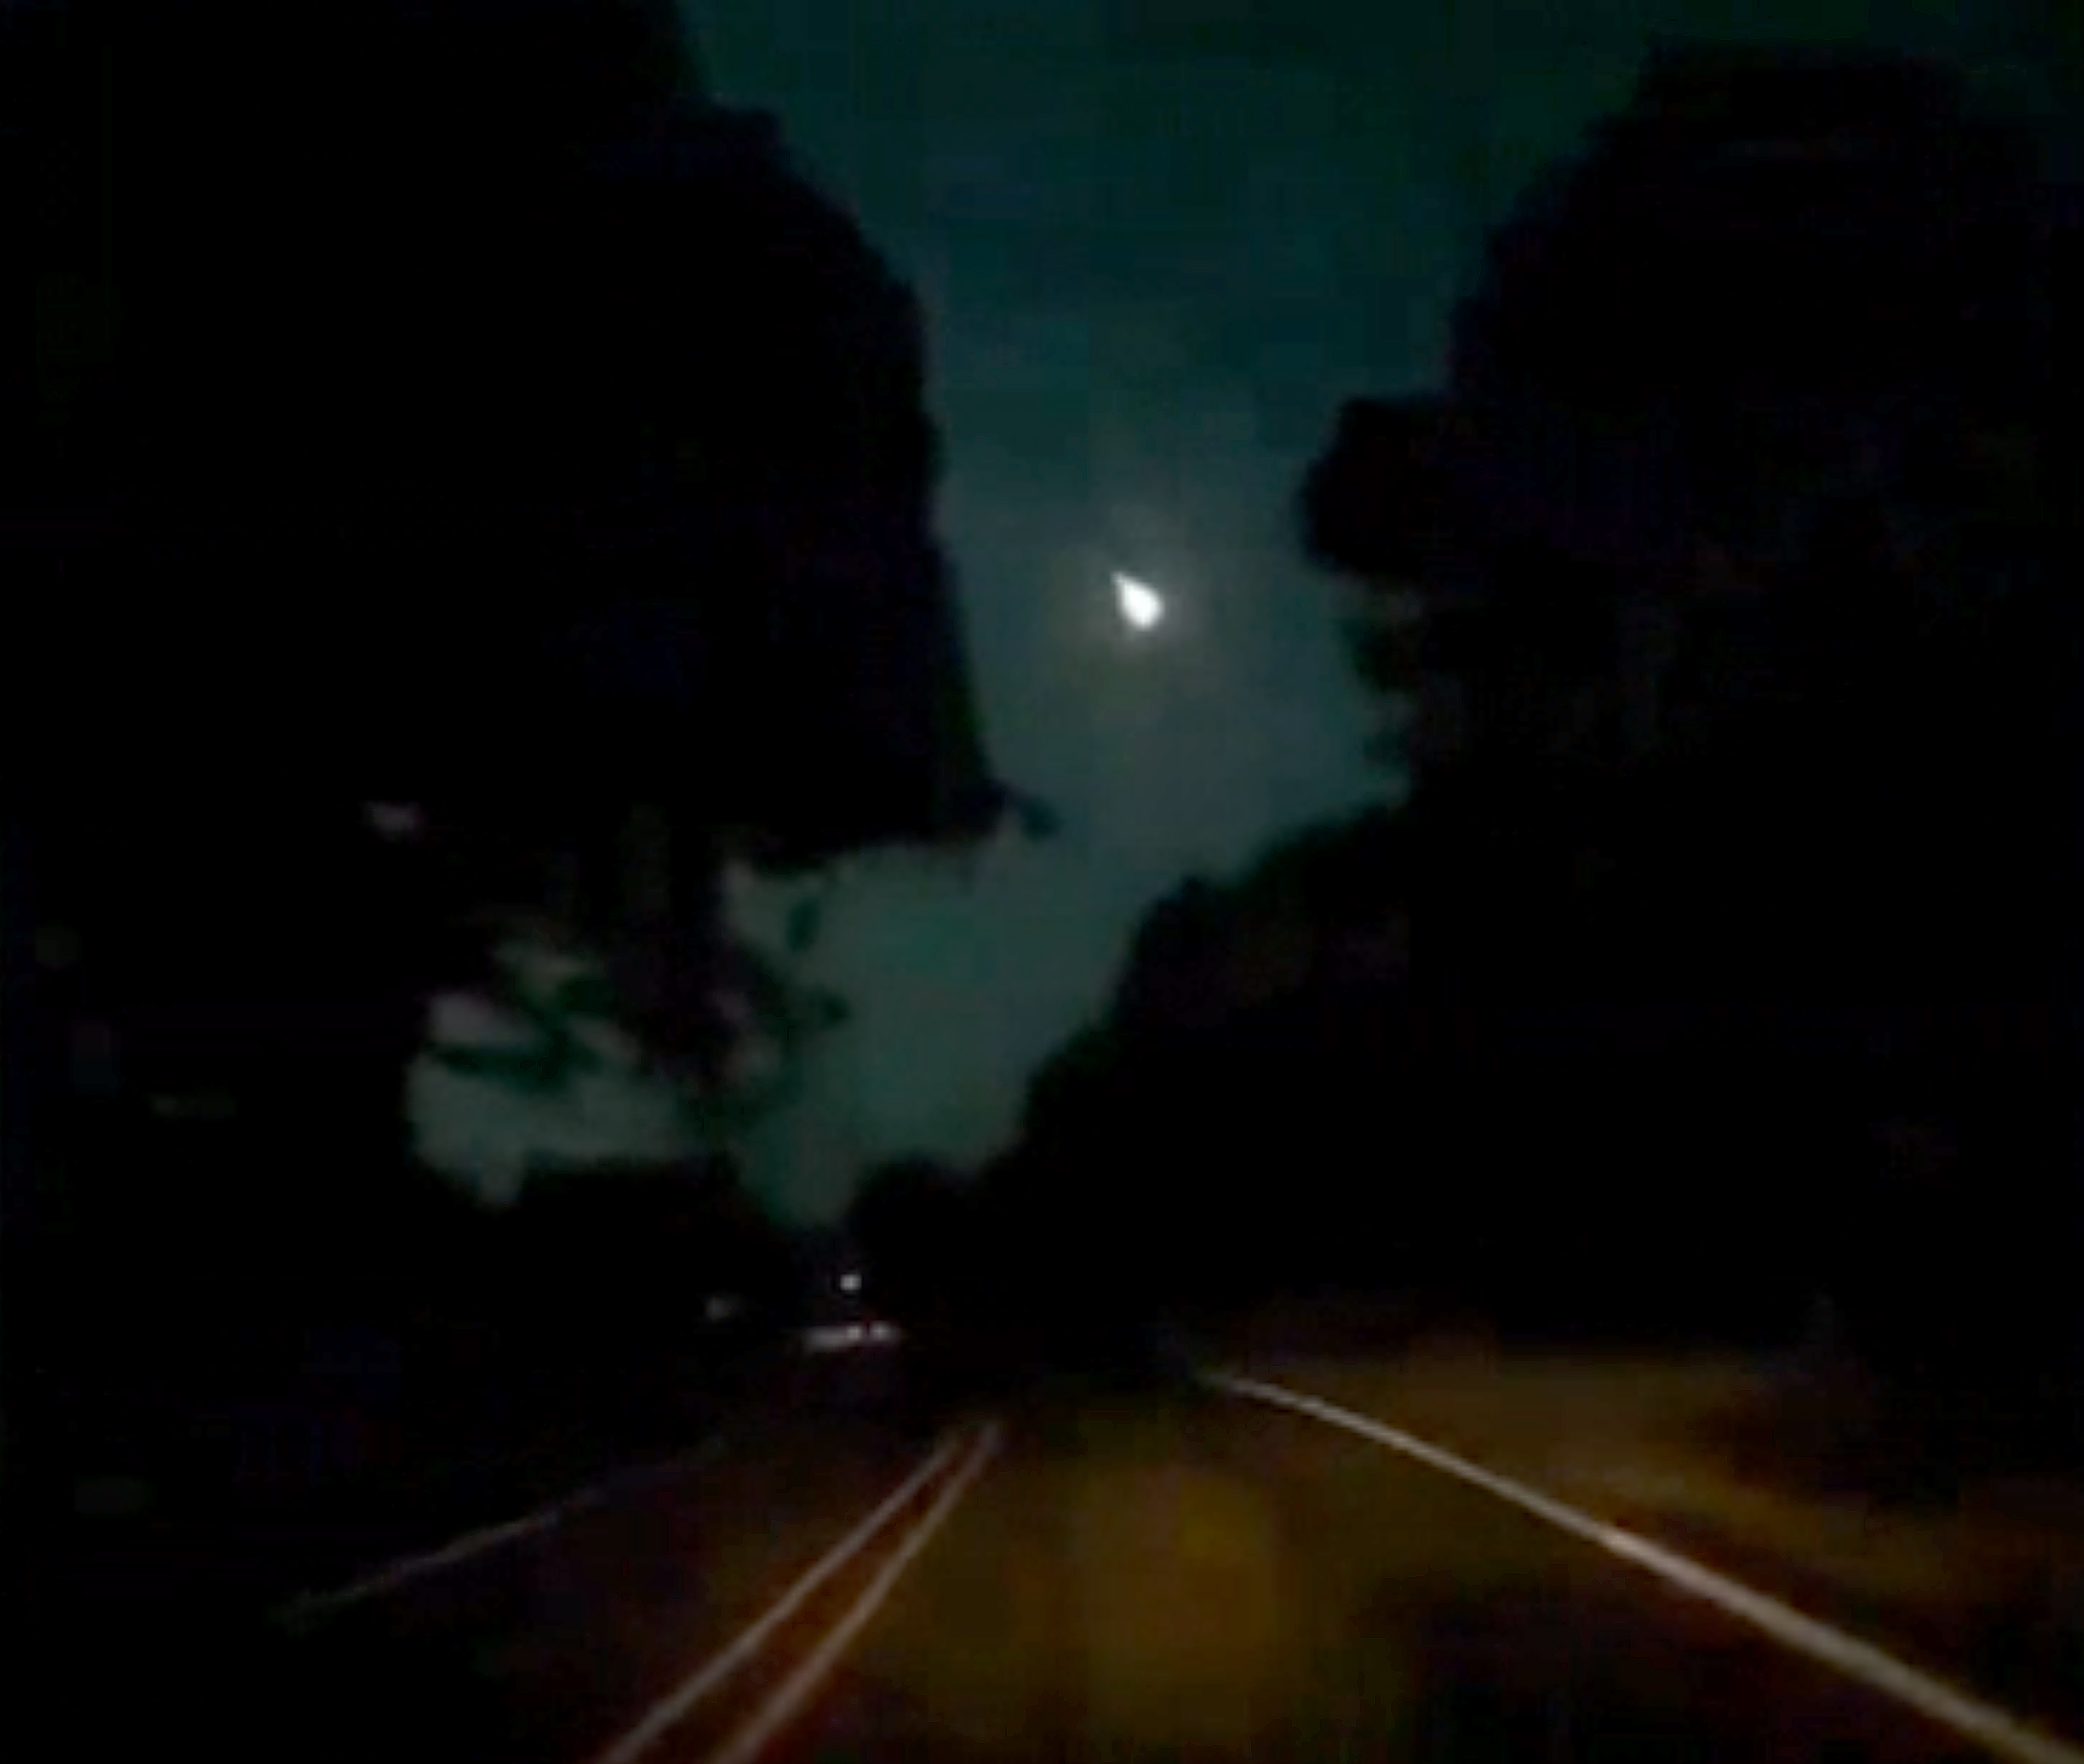 Video catches fiery meteor shooting across the night sky over Texas